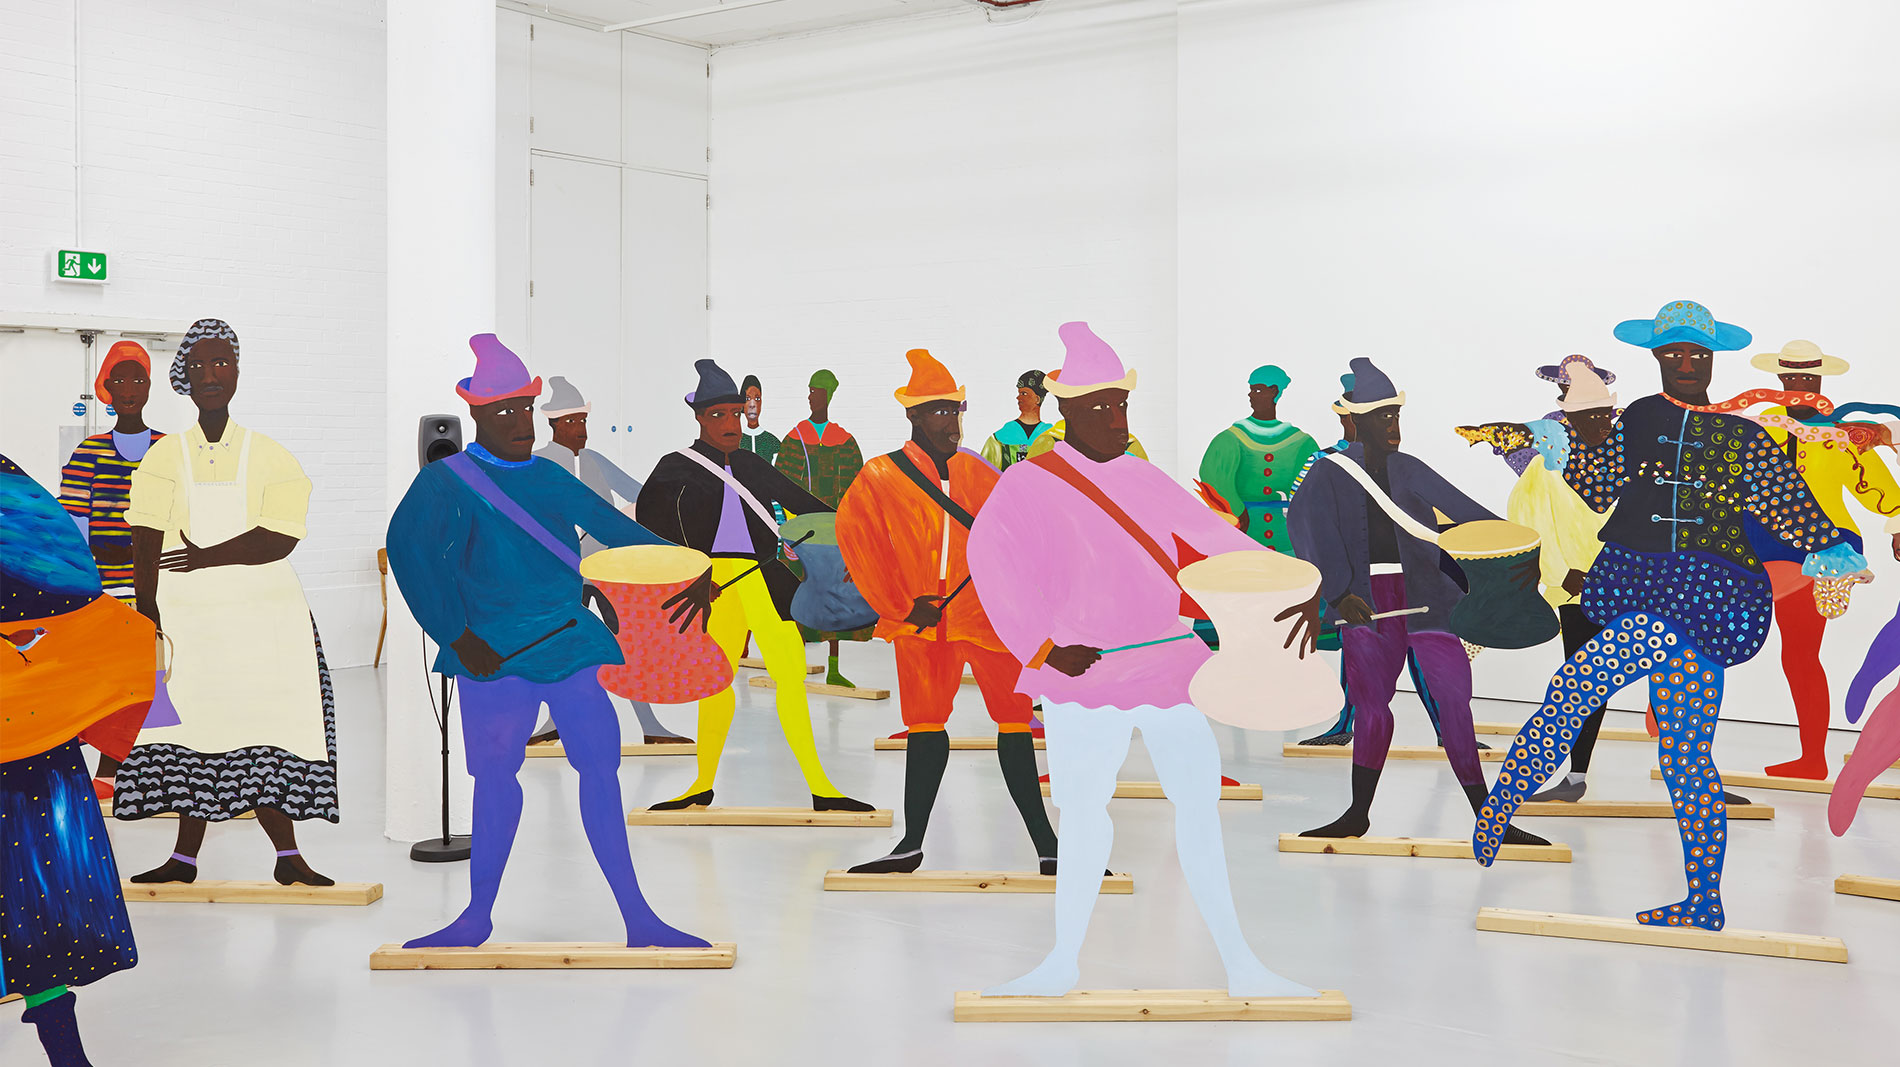 Who would be the Turner Prize Winner? In 2017, age, diversity, medium all collude to bring us a fascinating range of artists shortlisted for the Turner prize. We look at their wider oeuvre.